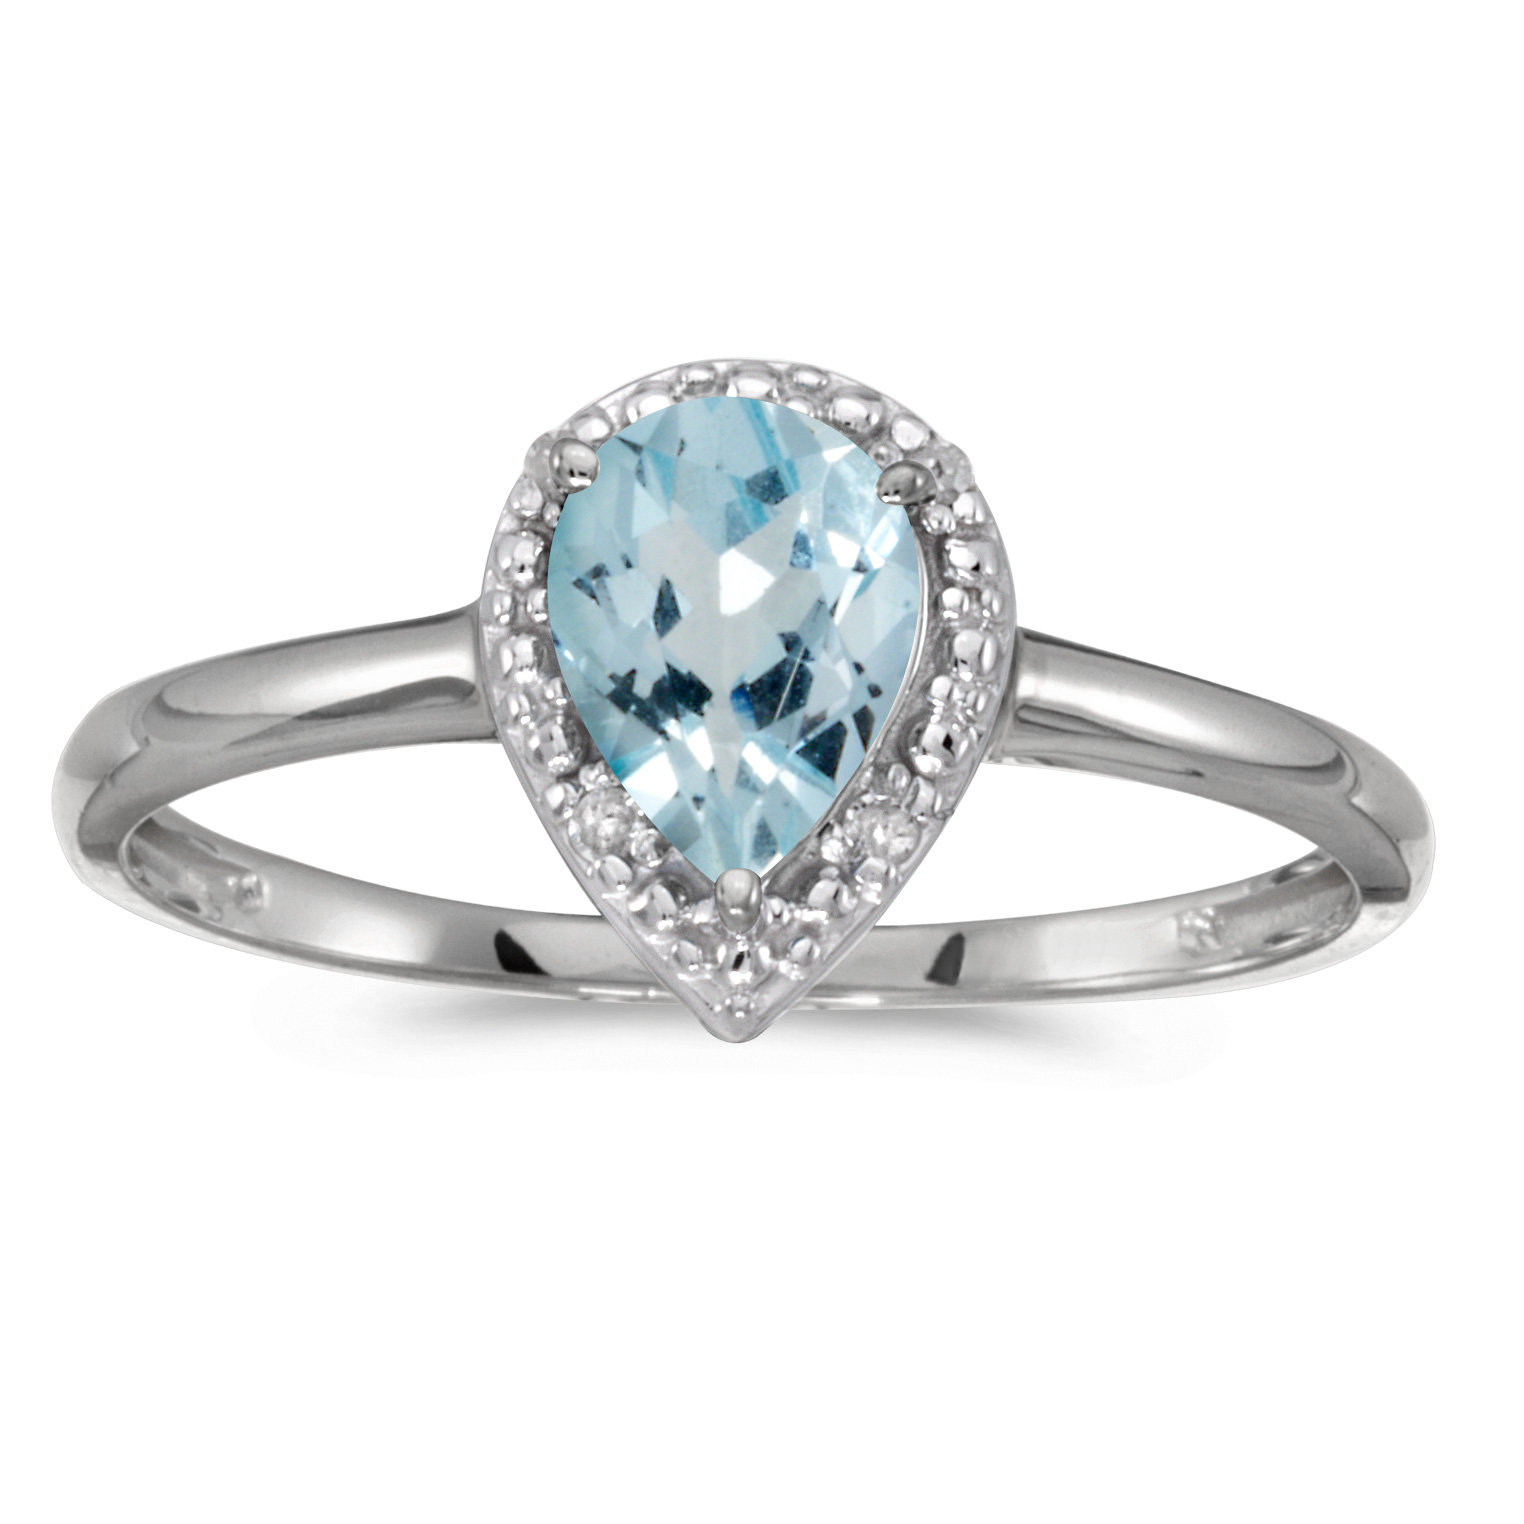 14k White Gold Pear Aquamarine And Diamond Ring by